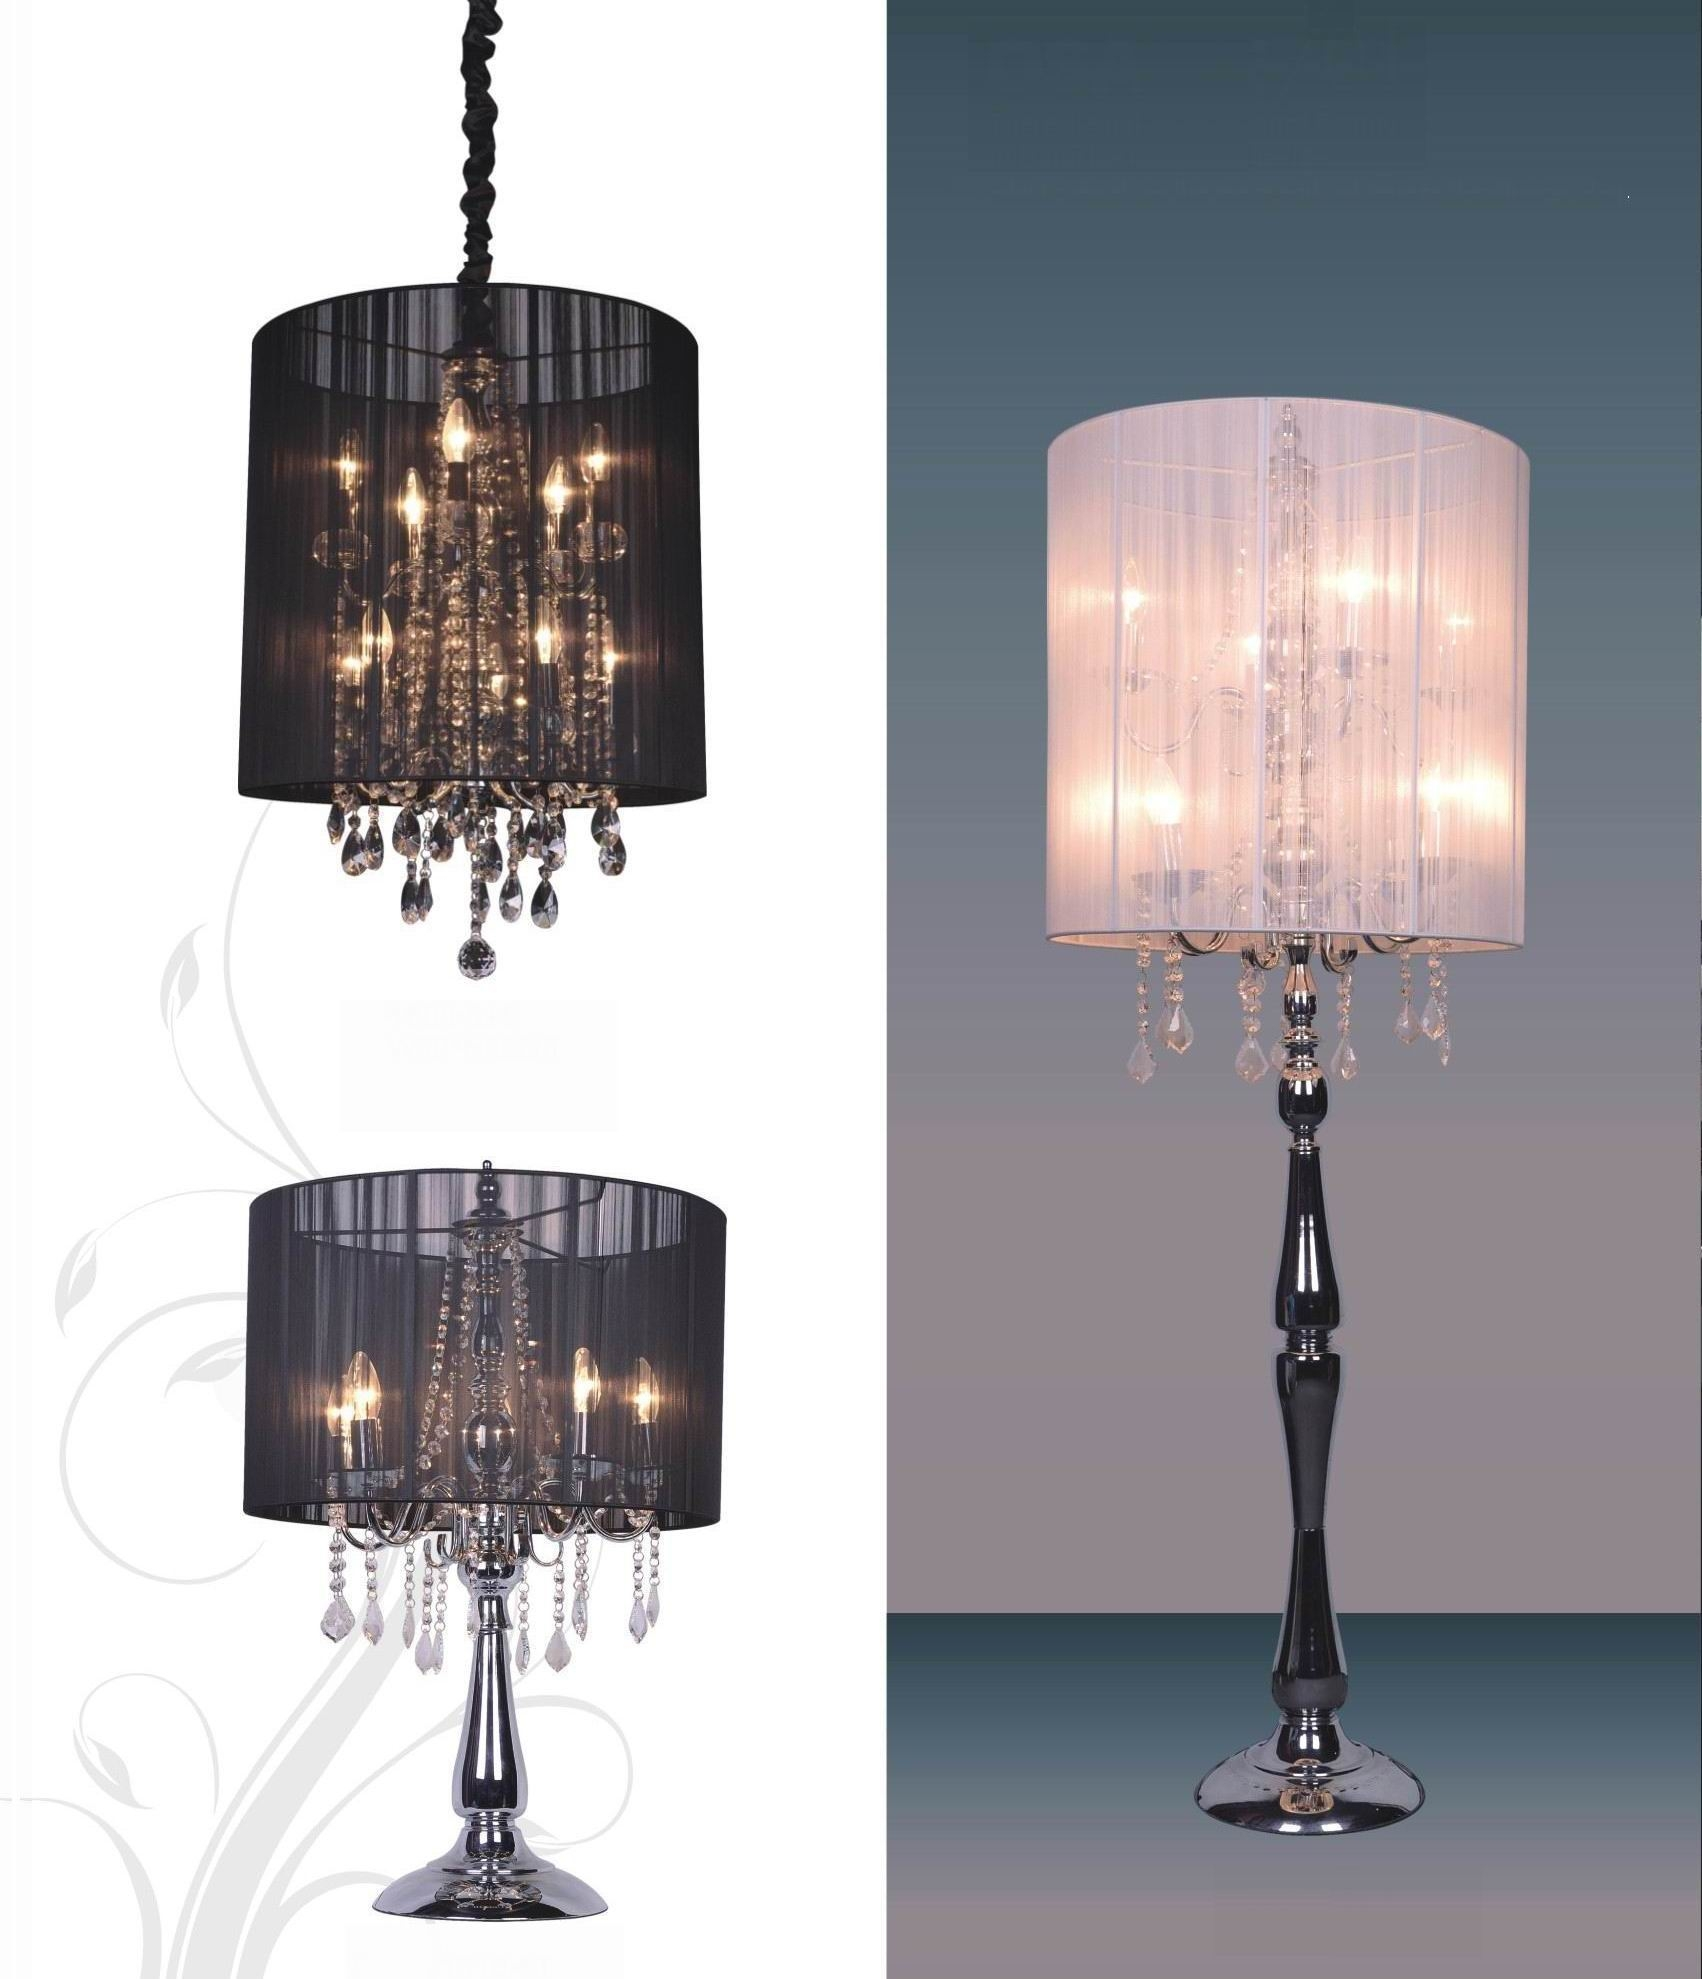 Inspiration about 51 Chandelier Lamp Gallery Adds New Lamps And Sconces To Their Intended For Crystal Table Chandeliers (#12 of 12)